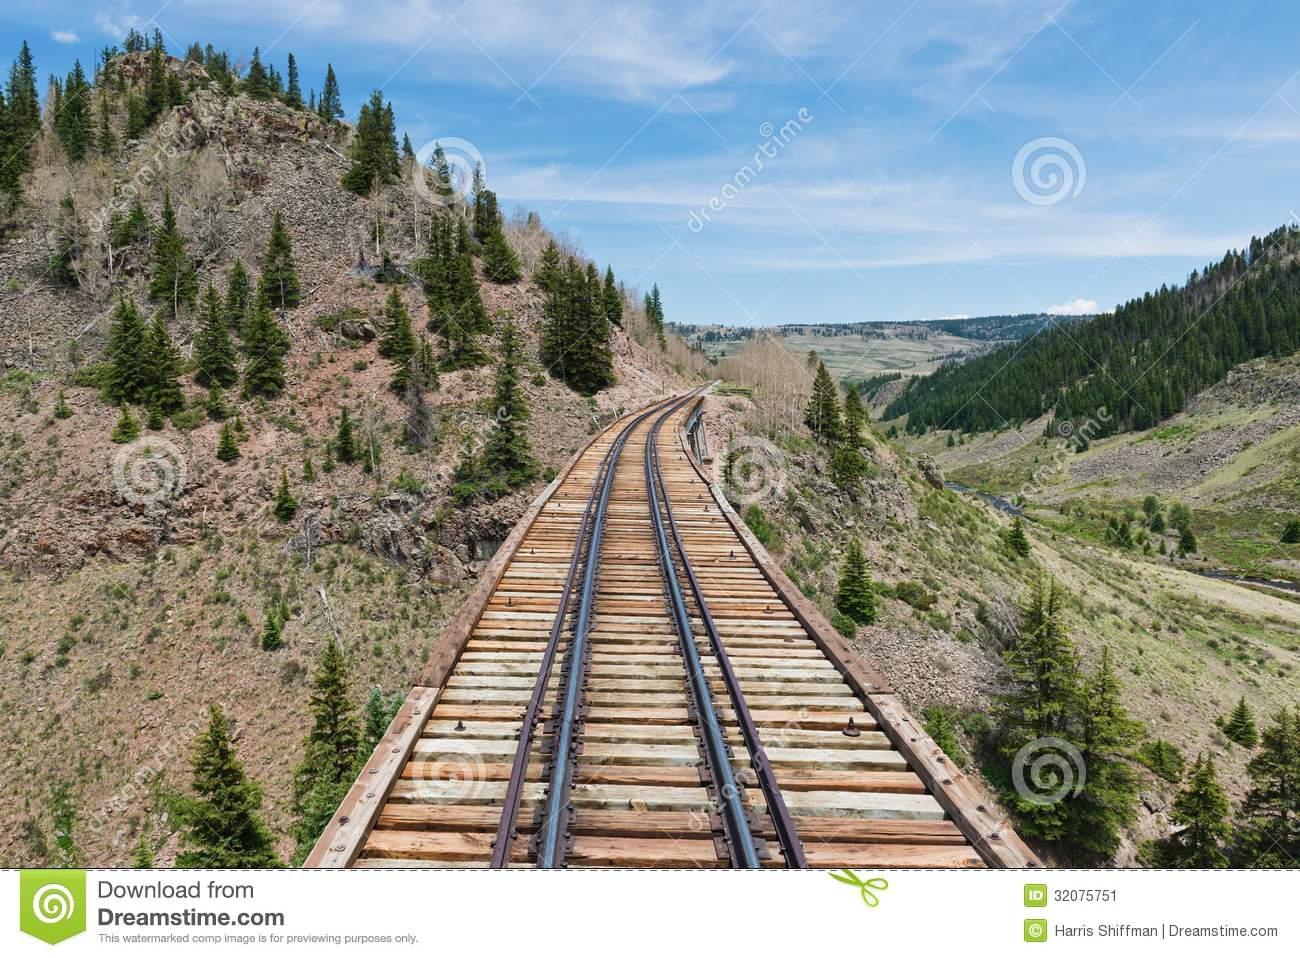 Wooden railroad trestle in southern Colorado.